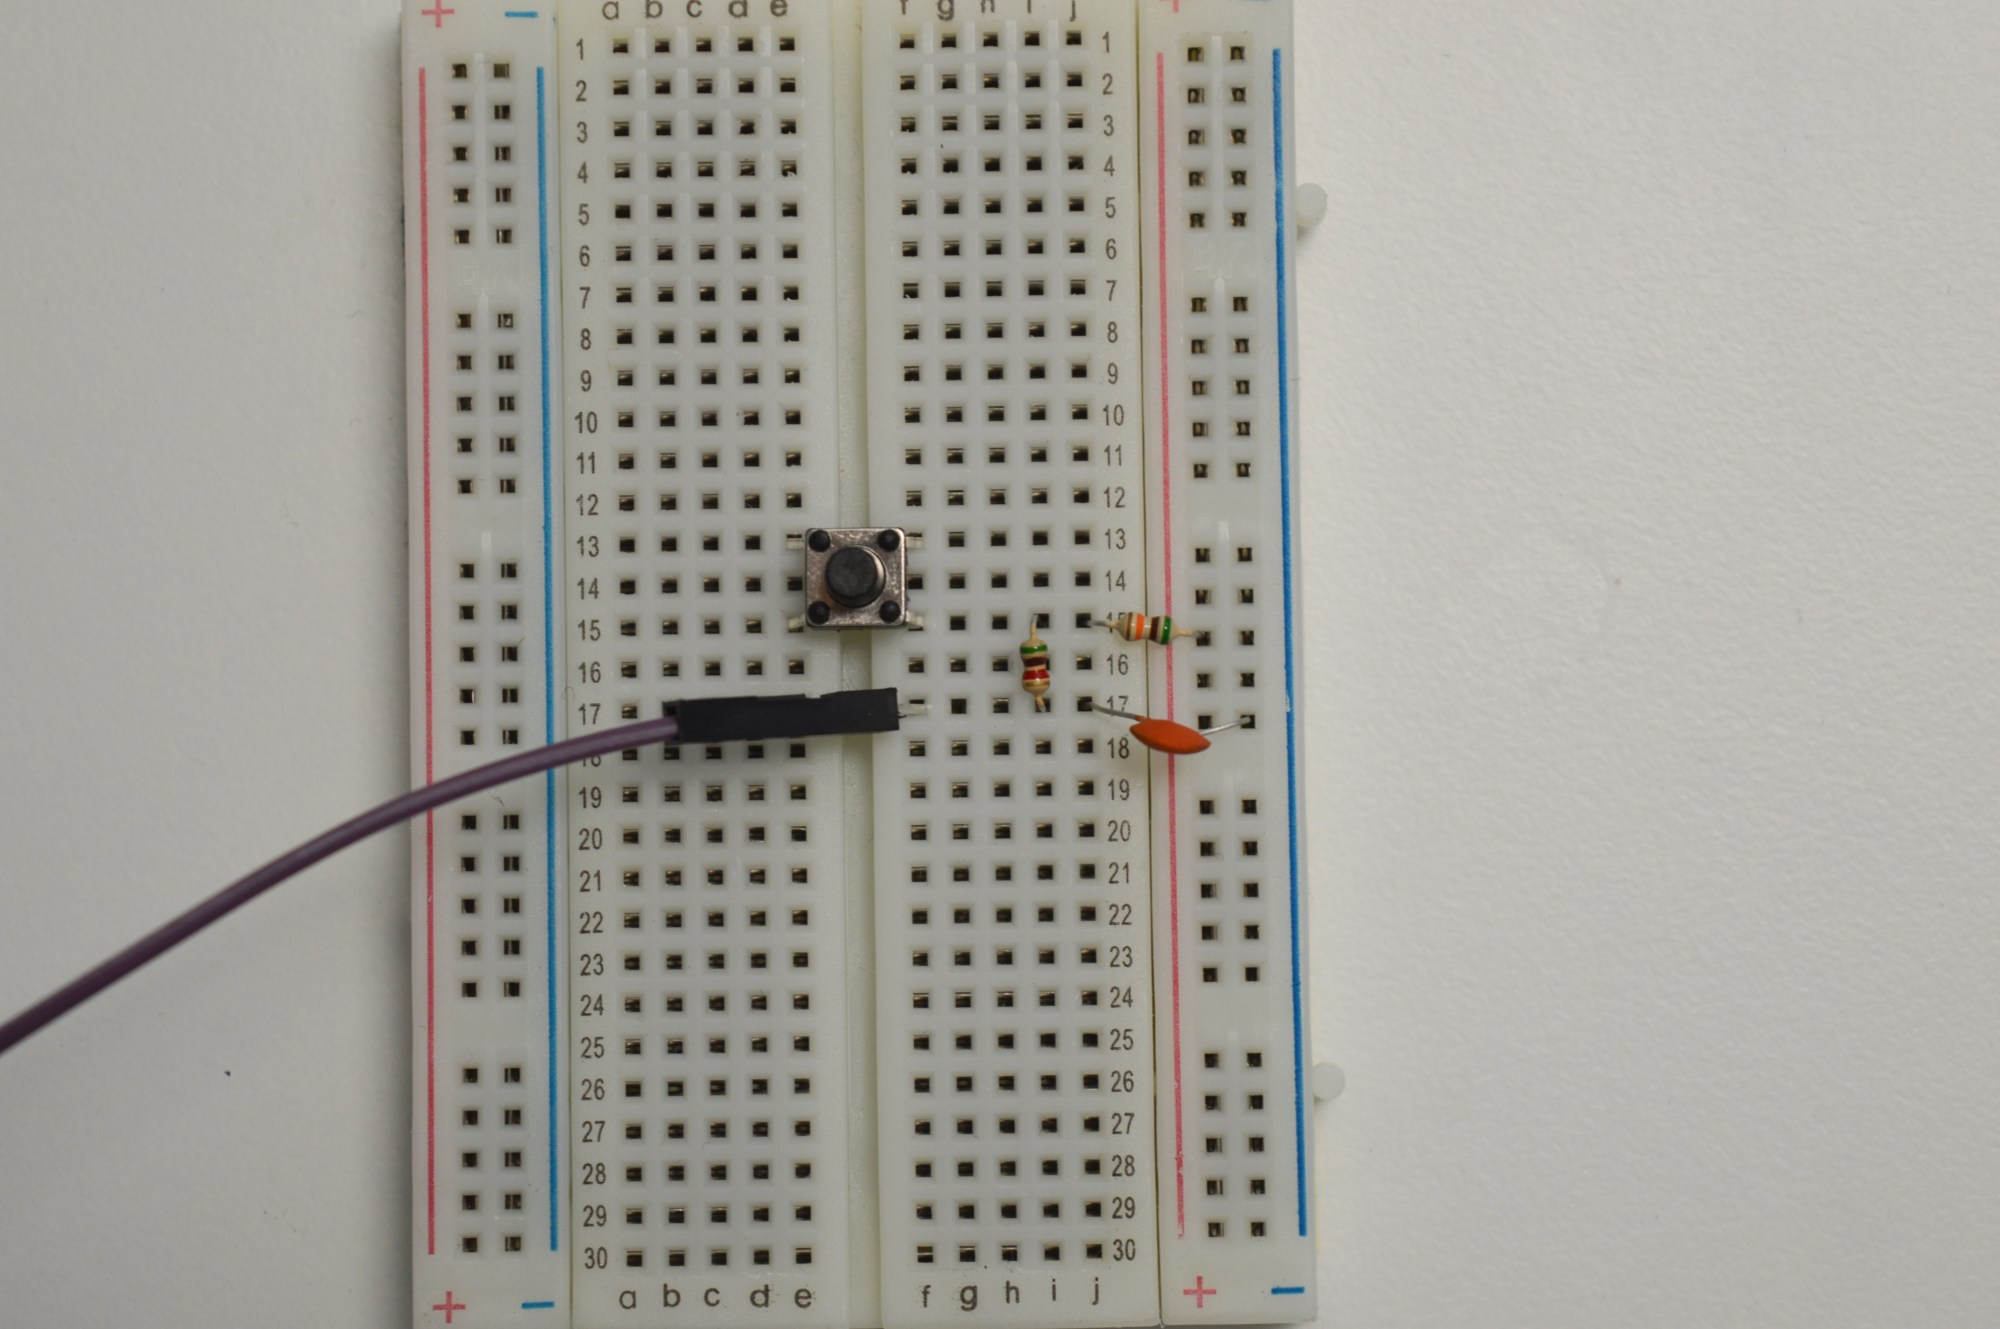 hight resolution of debouncing circuit for the push button